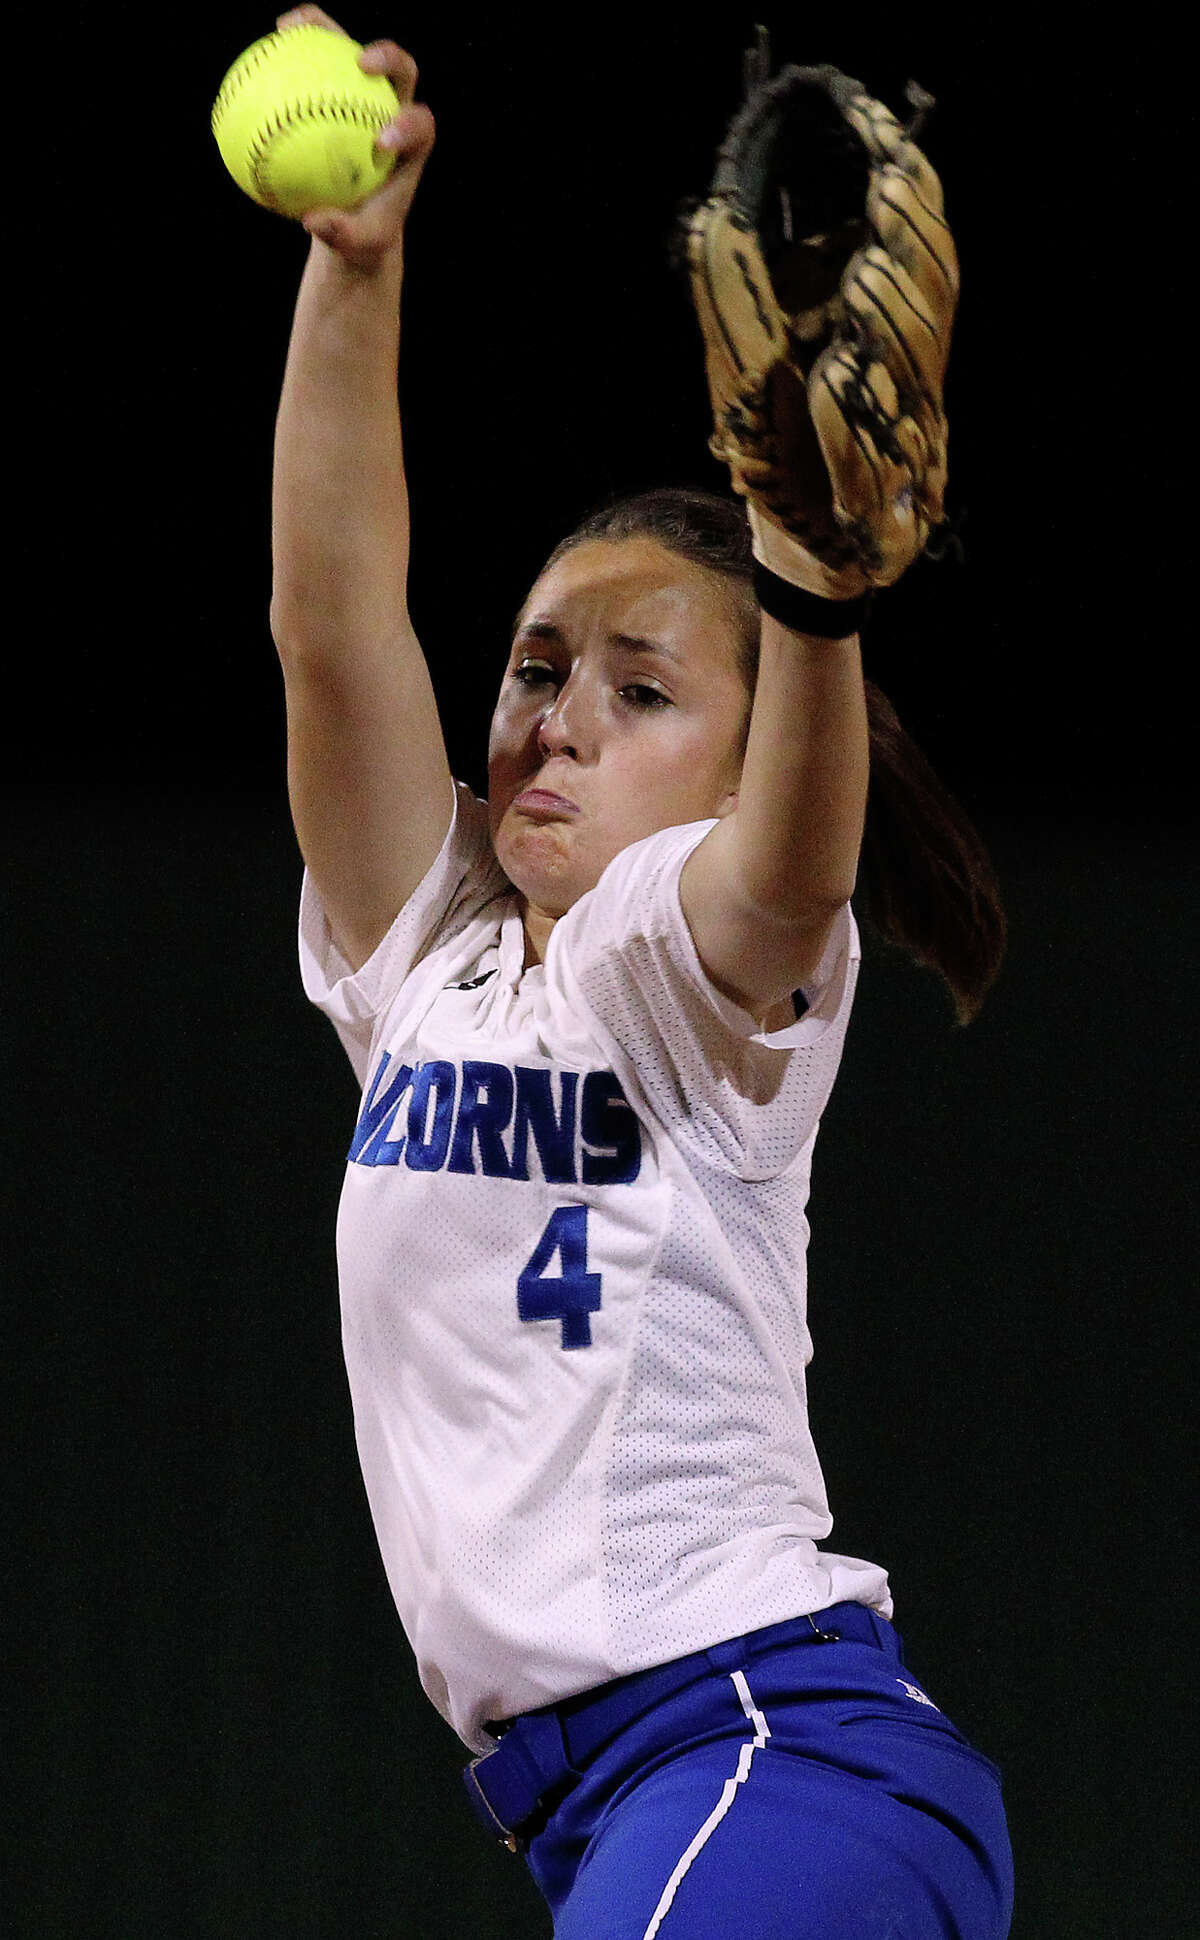 New Braunfels' Amanda Lopez (04) winds up her pitch against Canyon in softball at Canyon High School on Tuesday, Mar. 8. 2011. Canyon defeated New Braunfels, 6-4.